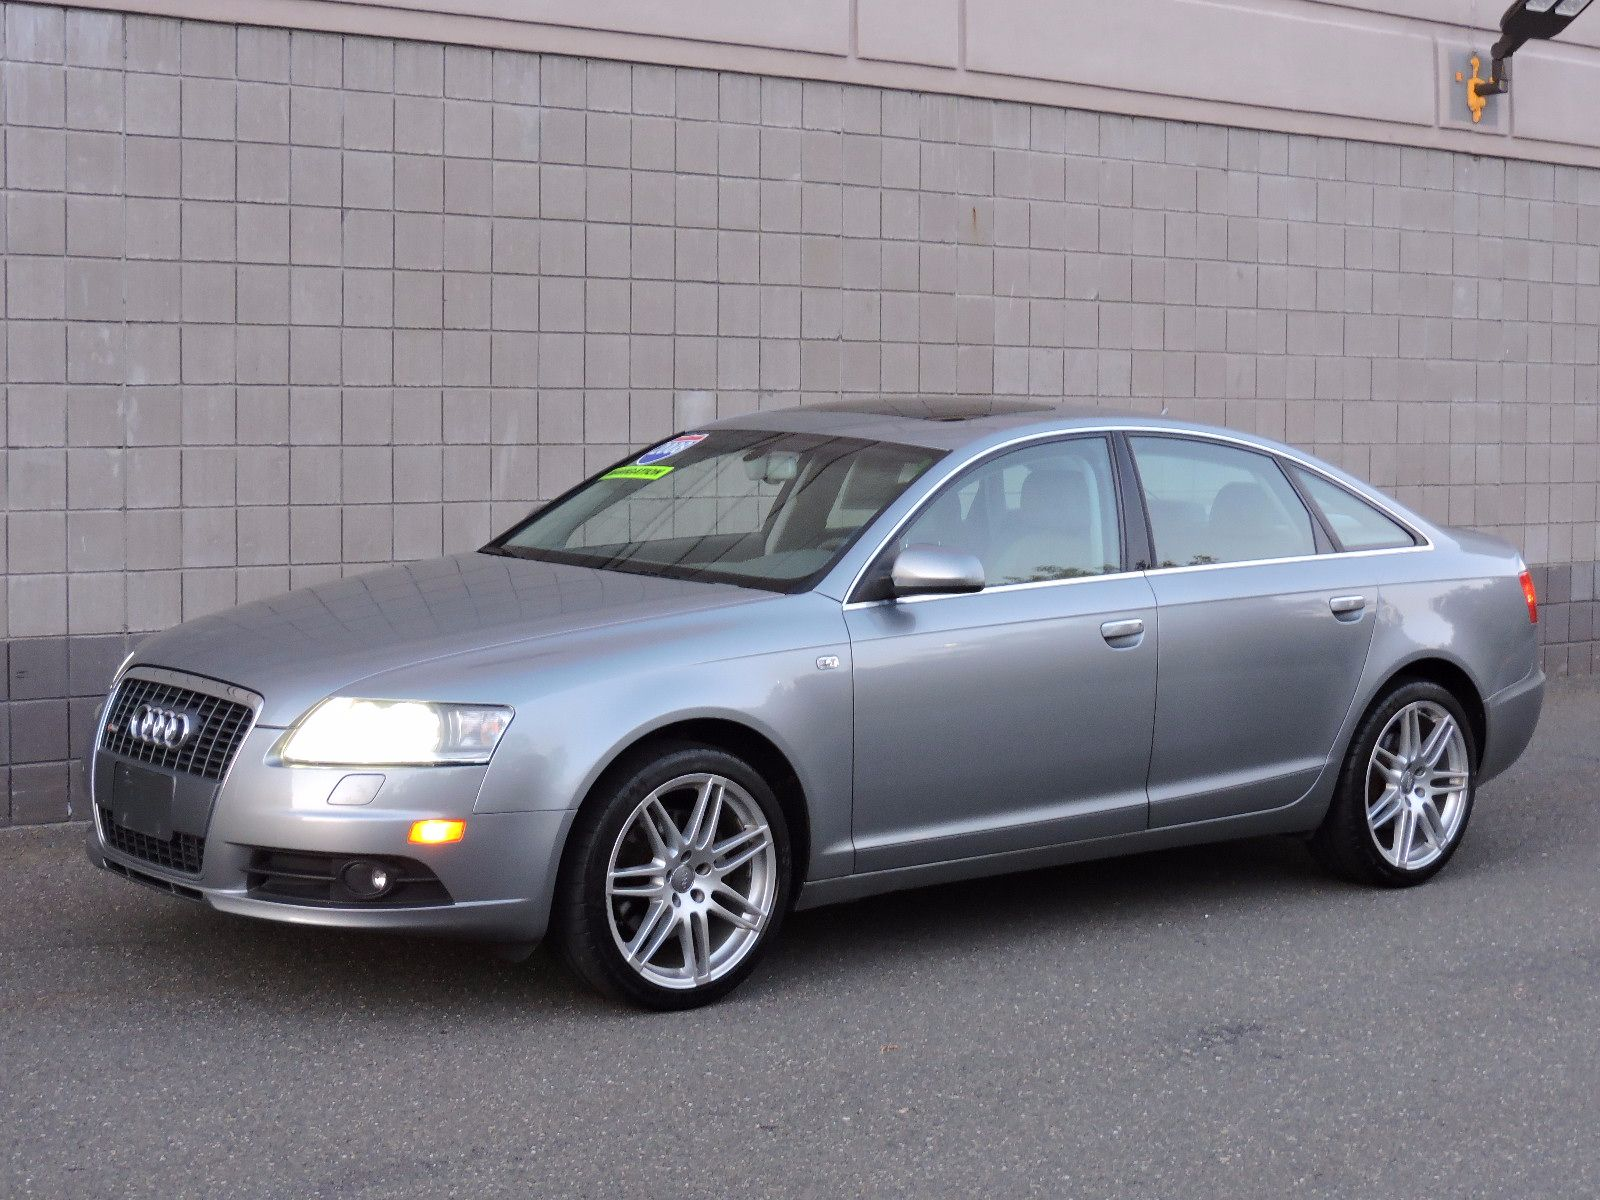 used 2008 audi a6 at auto house usa saugus. Black Bedroom Furniture Sets. Home Design Ideas